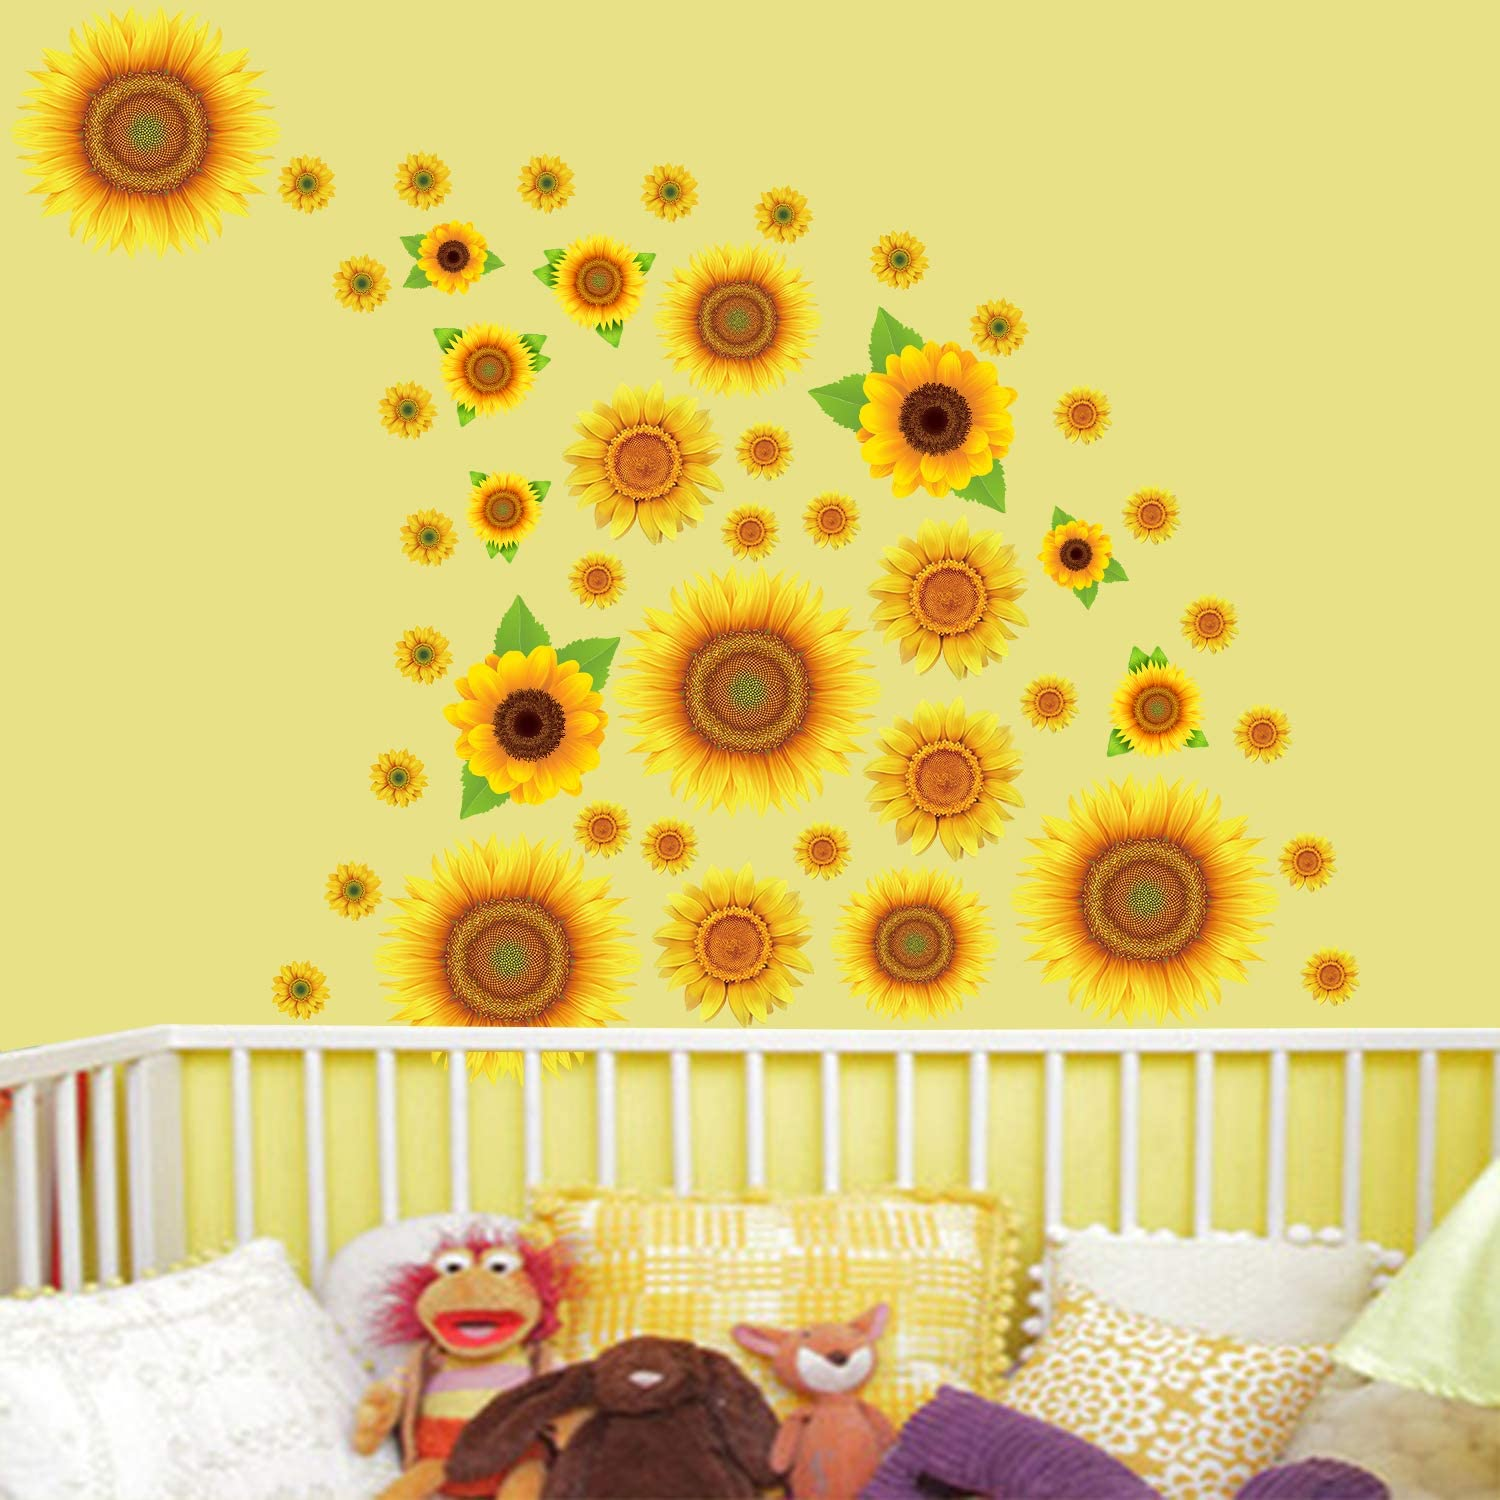 Sunflowers Wall Sticker Yellow Flowers Wall Decals Floral Removable Wall Stickers Wall Decal for Kids Nursery Bedroom 45Pcs